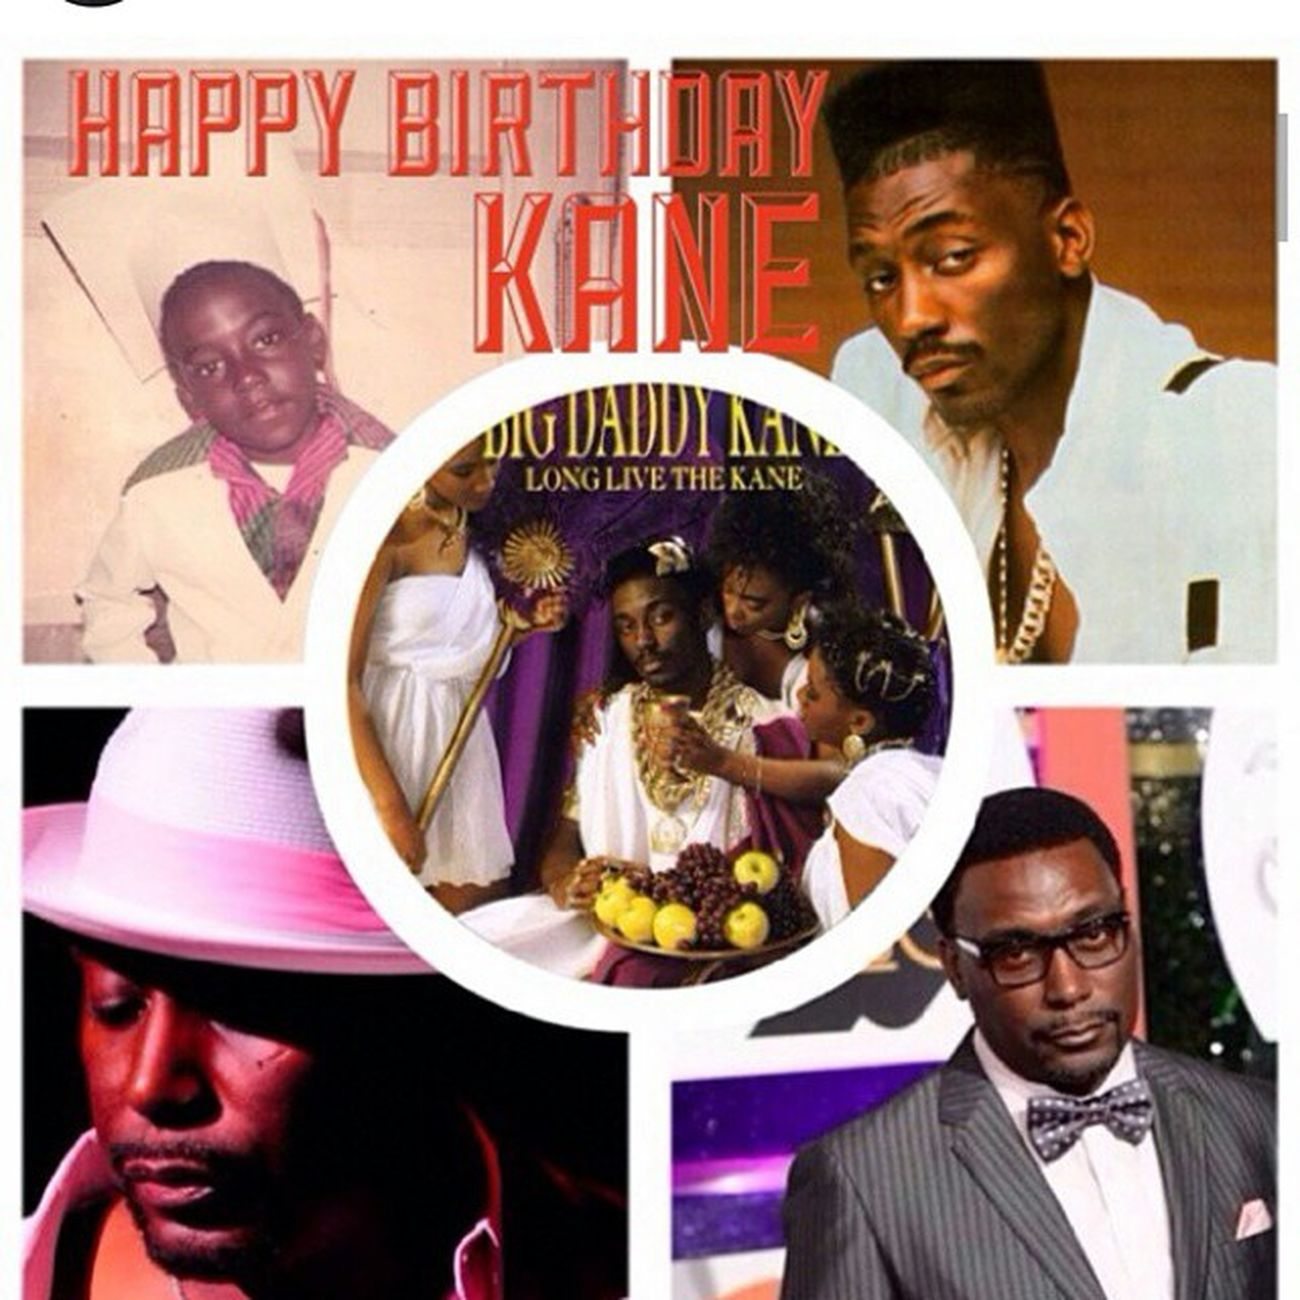 HappyBirthday BigDaddyKane Repost from his page @officialbigdaddykane